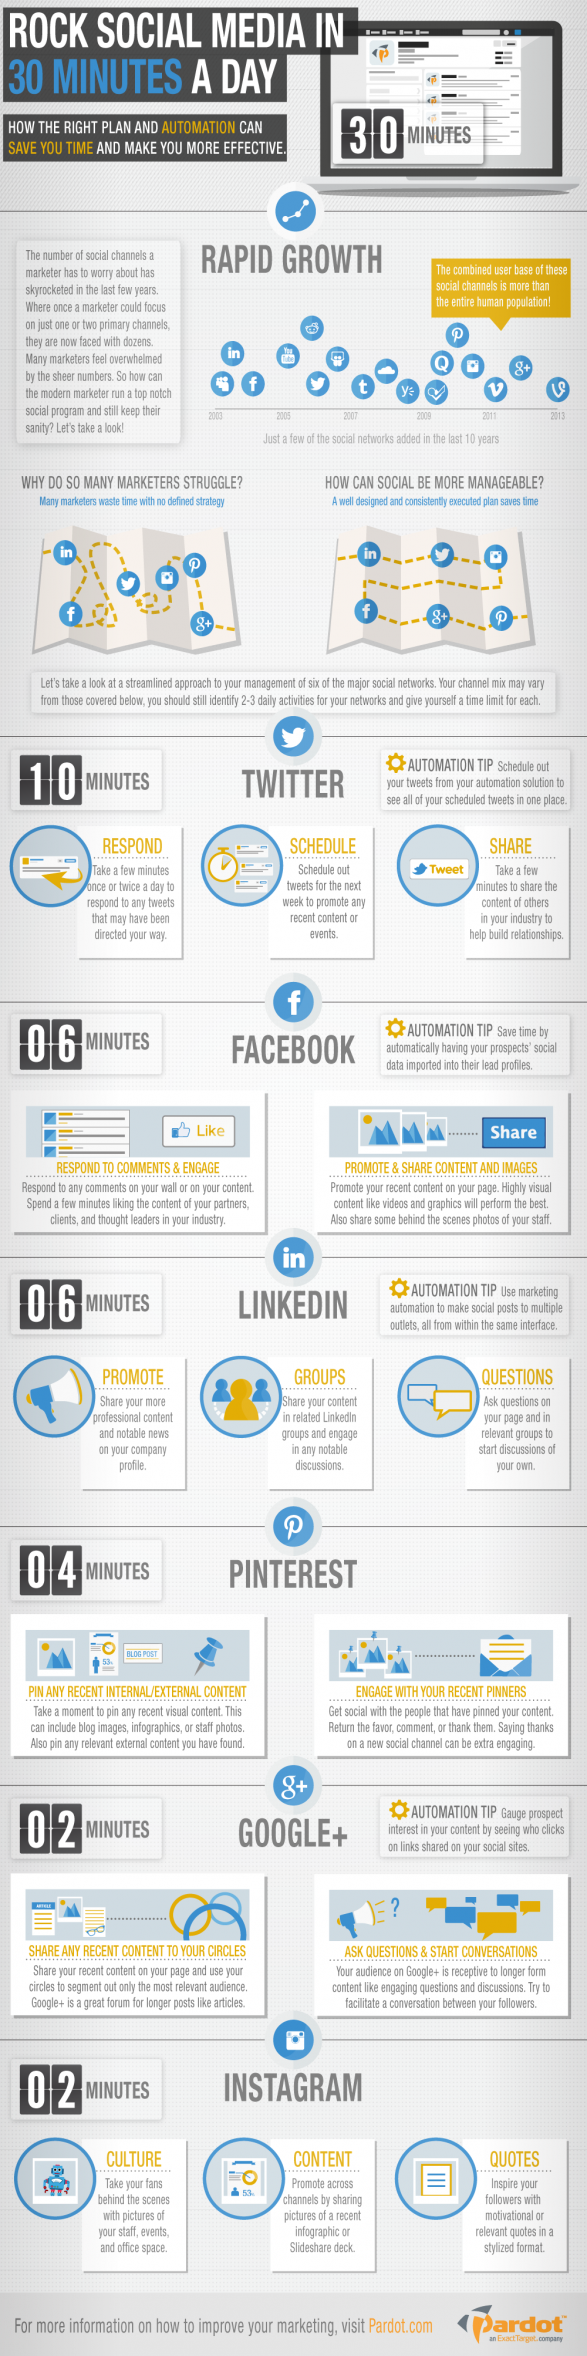 Tips To Using Social Media in 30 Mins A Day